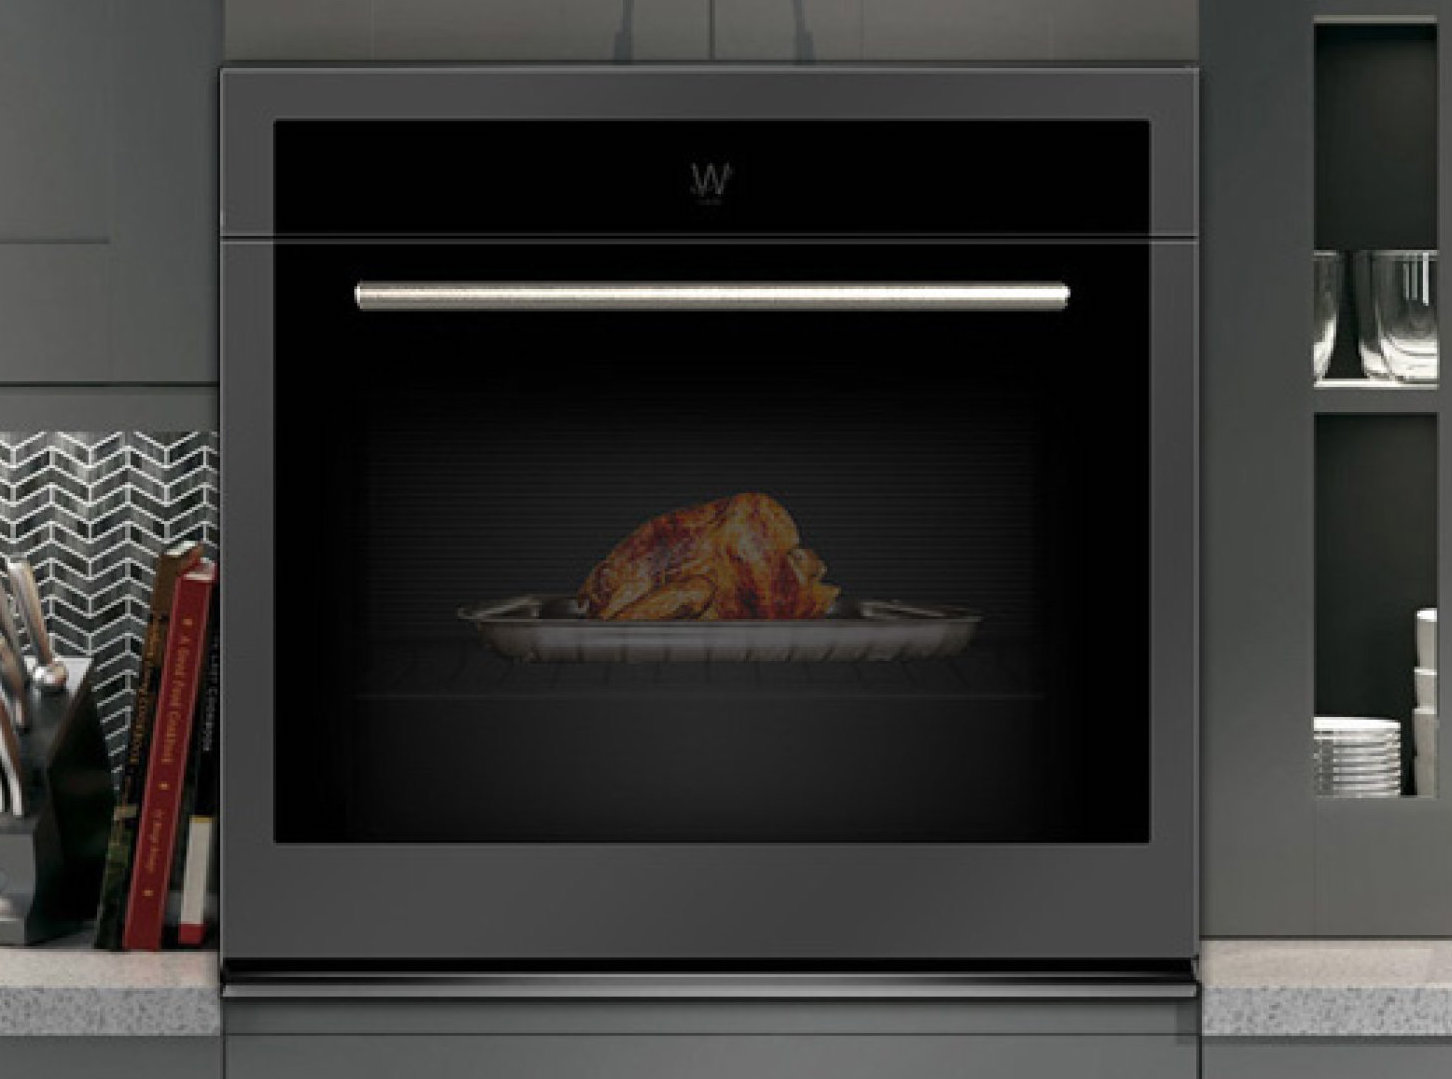 Whirlpool smart countertop oven